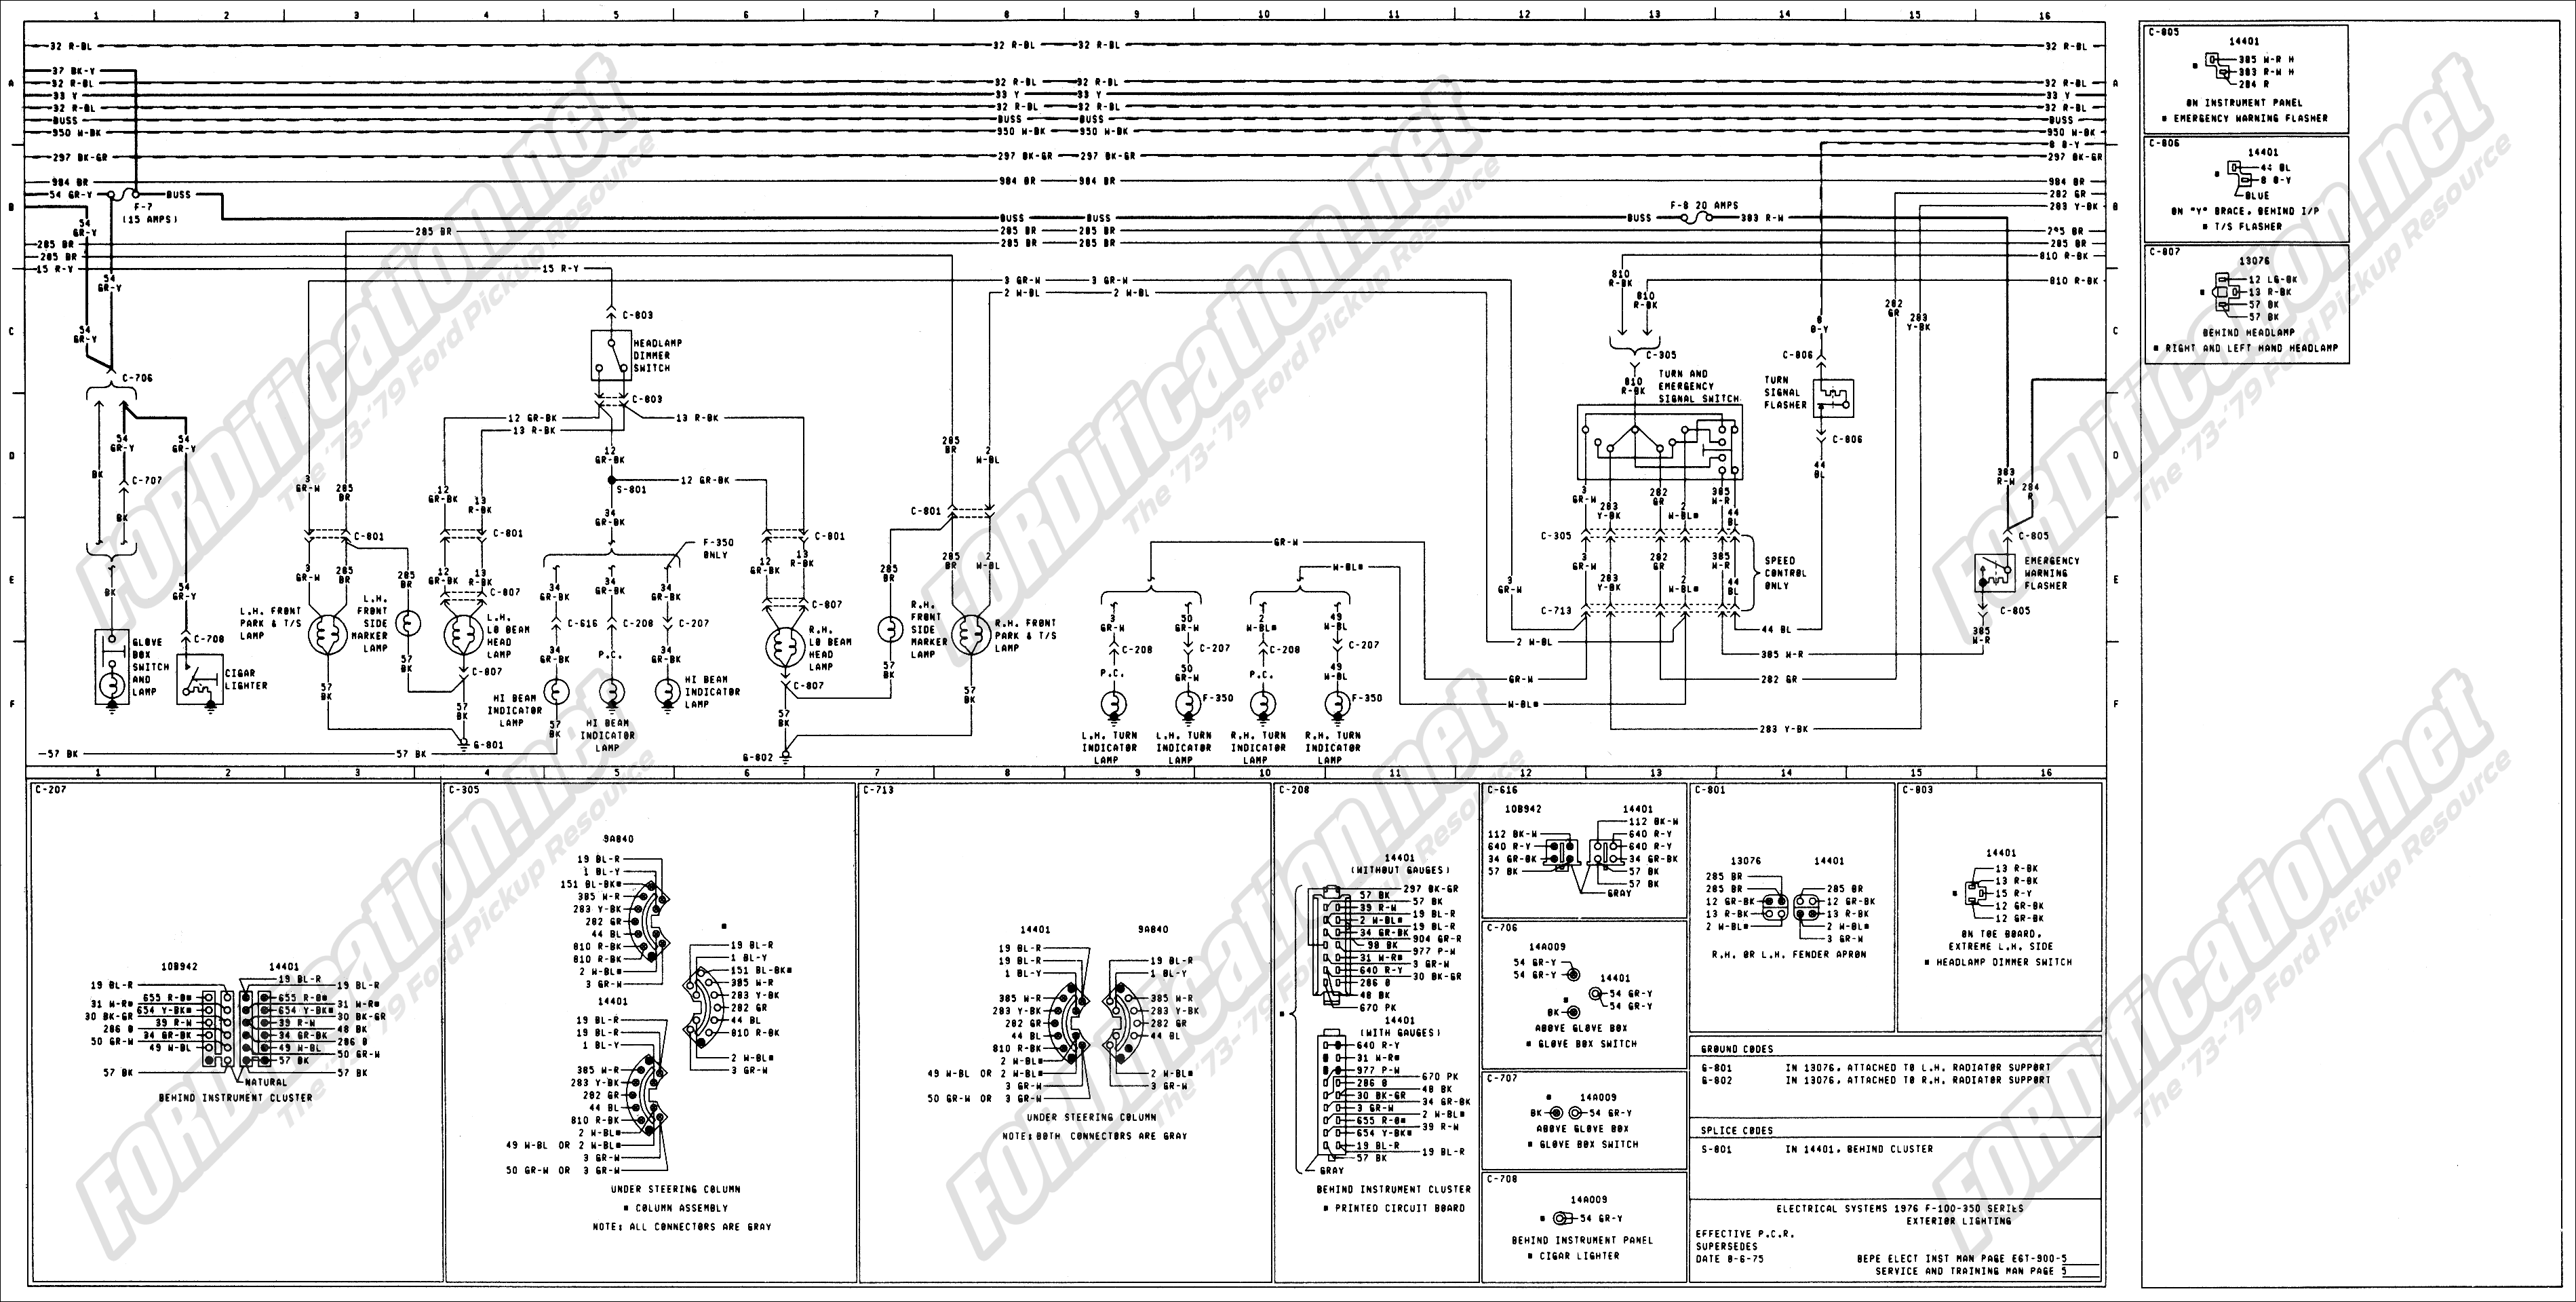 1983 Ford F100 Wiring Diagram Anything Diagrams F150 Radio 1973 1979 Truck Schematics Fordification Net Rh Ignition